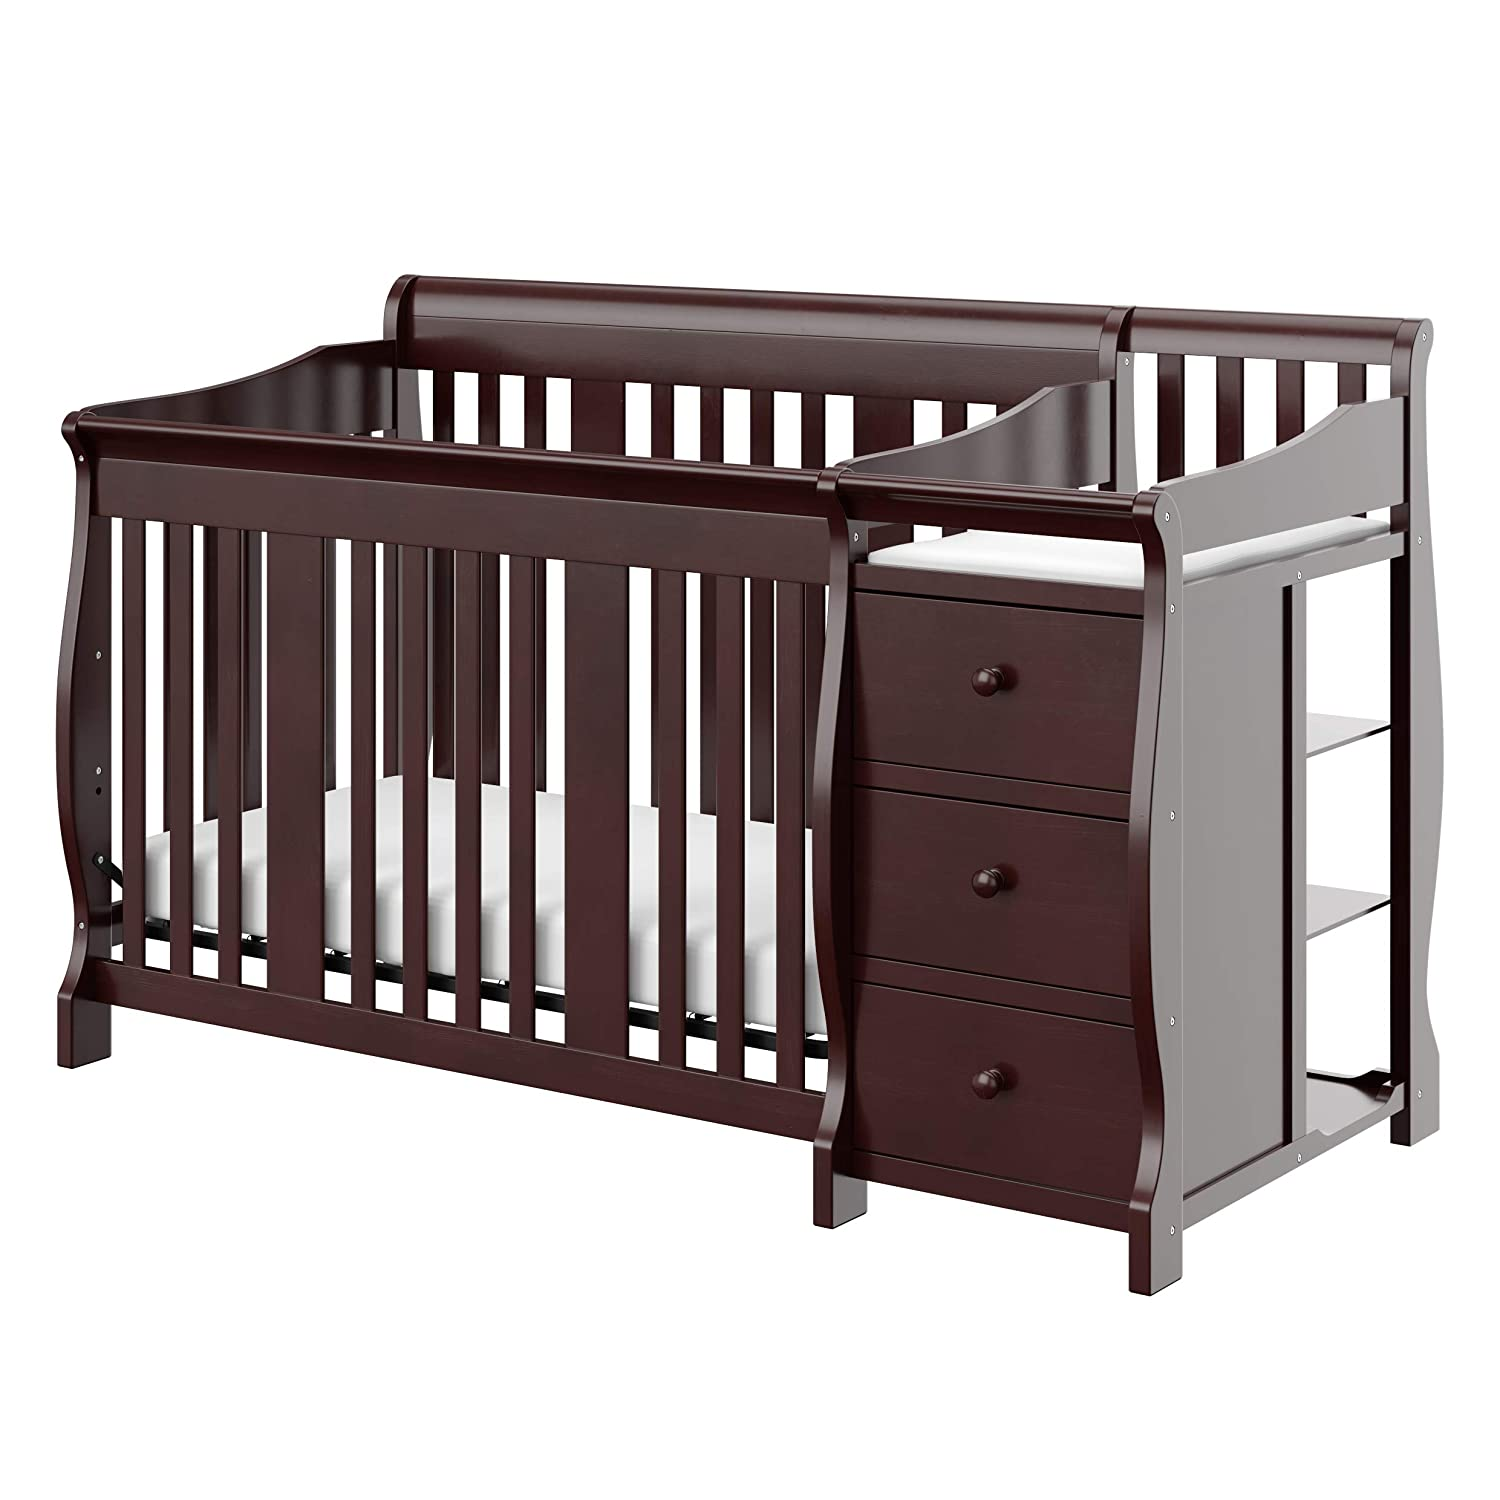 Storkcraft Portofino 4-In-1 Fixed Side Convertible Crib & Changer